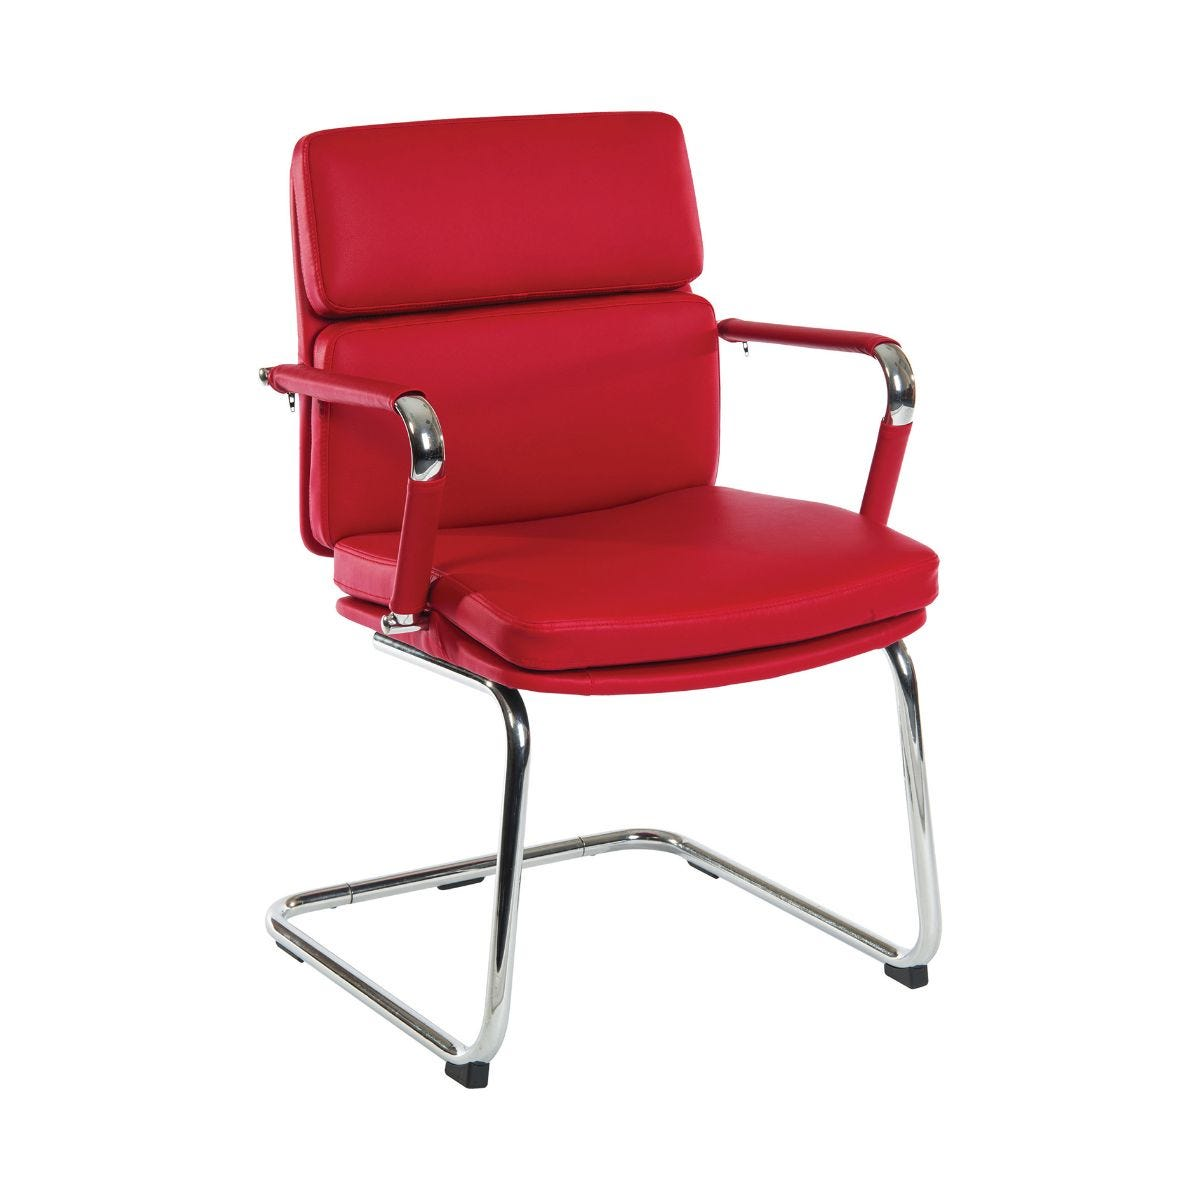 86 Office Furniture Importers Uk Bt Office